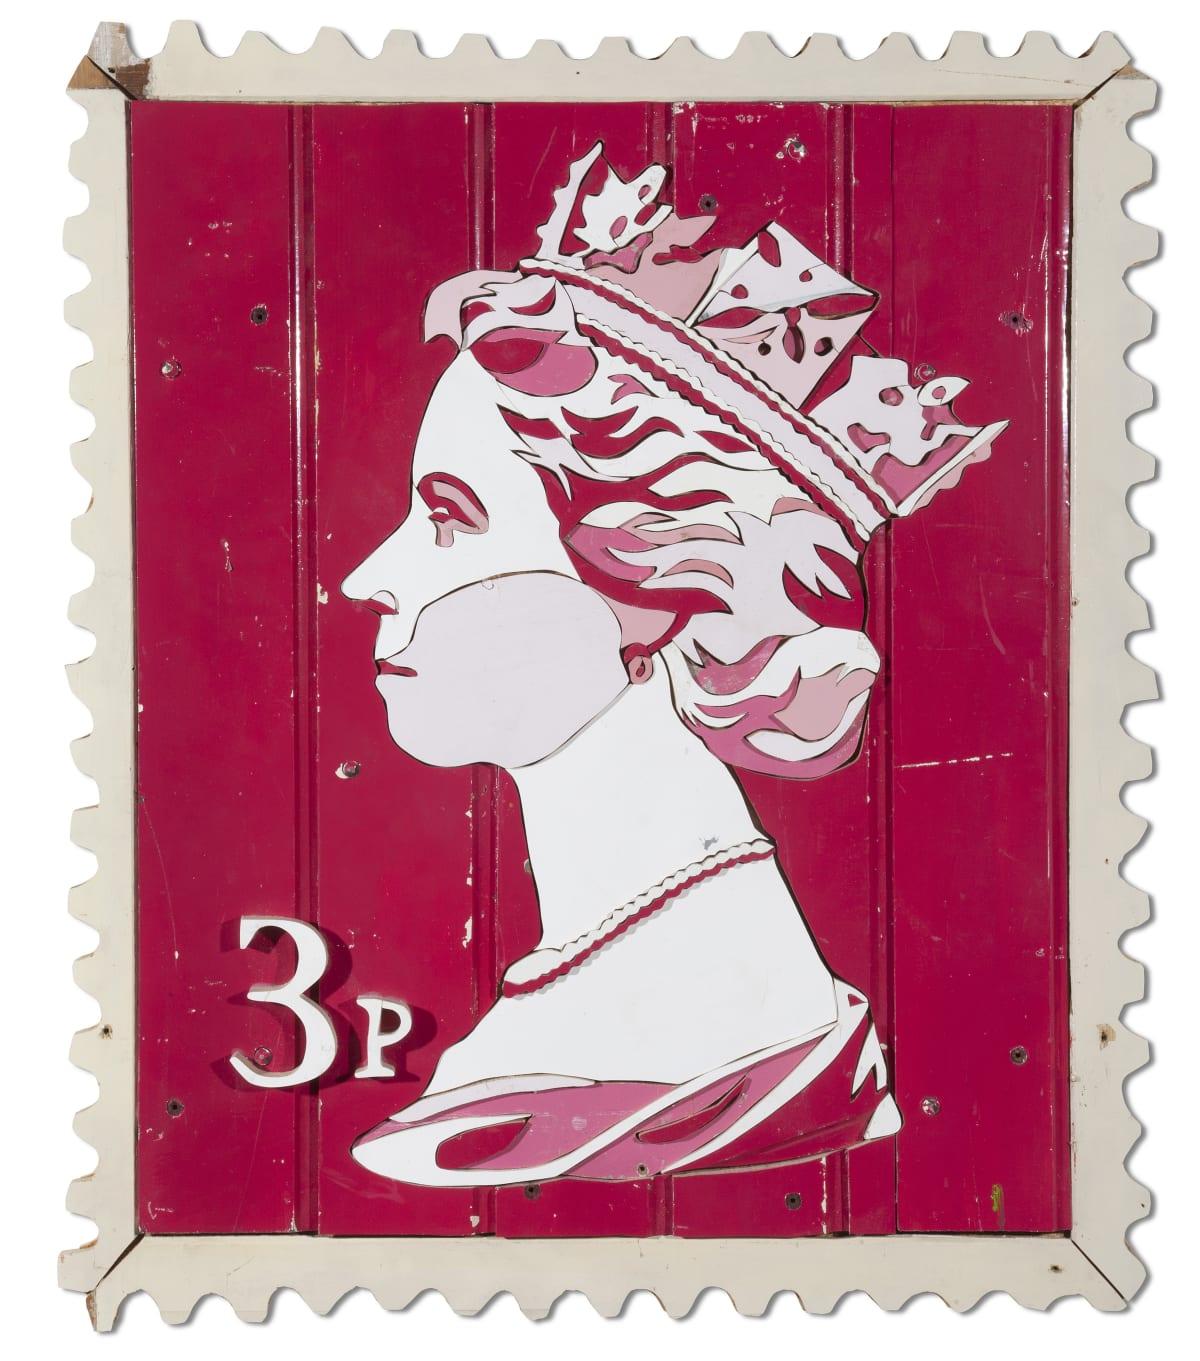 3p Queen Stamp Colored salvaged wood 100 x 85 x 3.5 cm